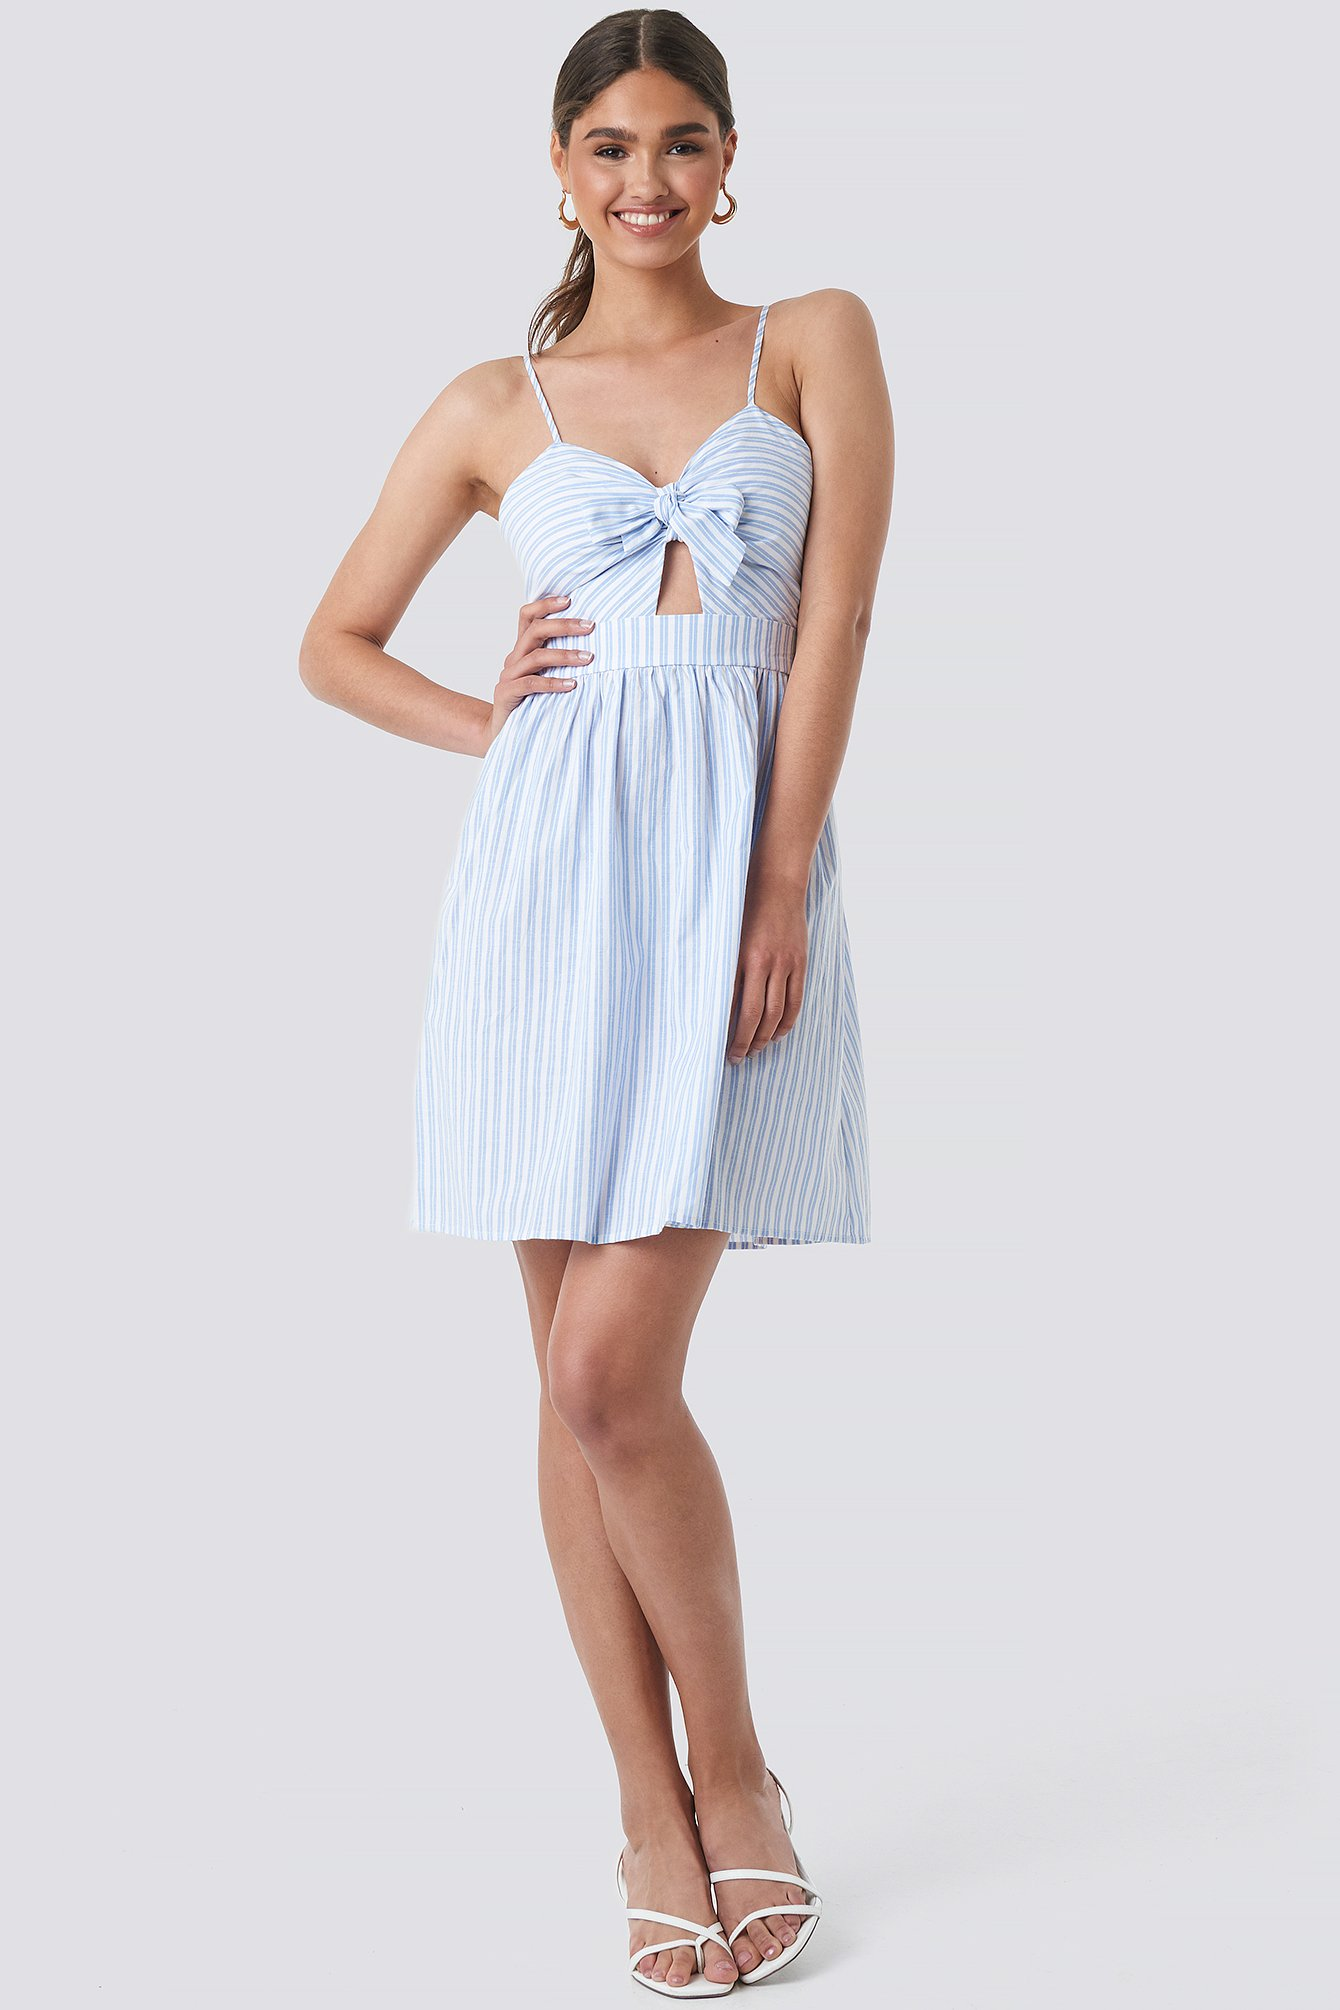 na-kd boho -  Knot Front Cut Out Dress - White,Blue